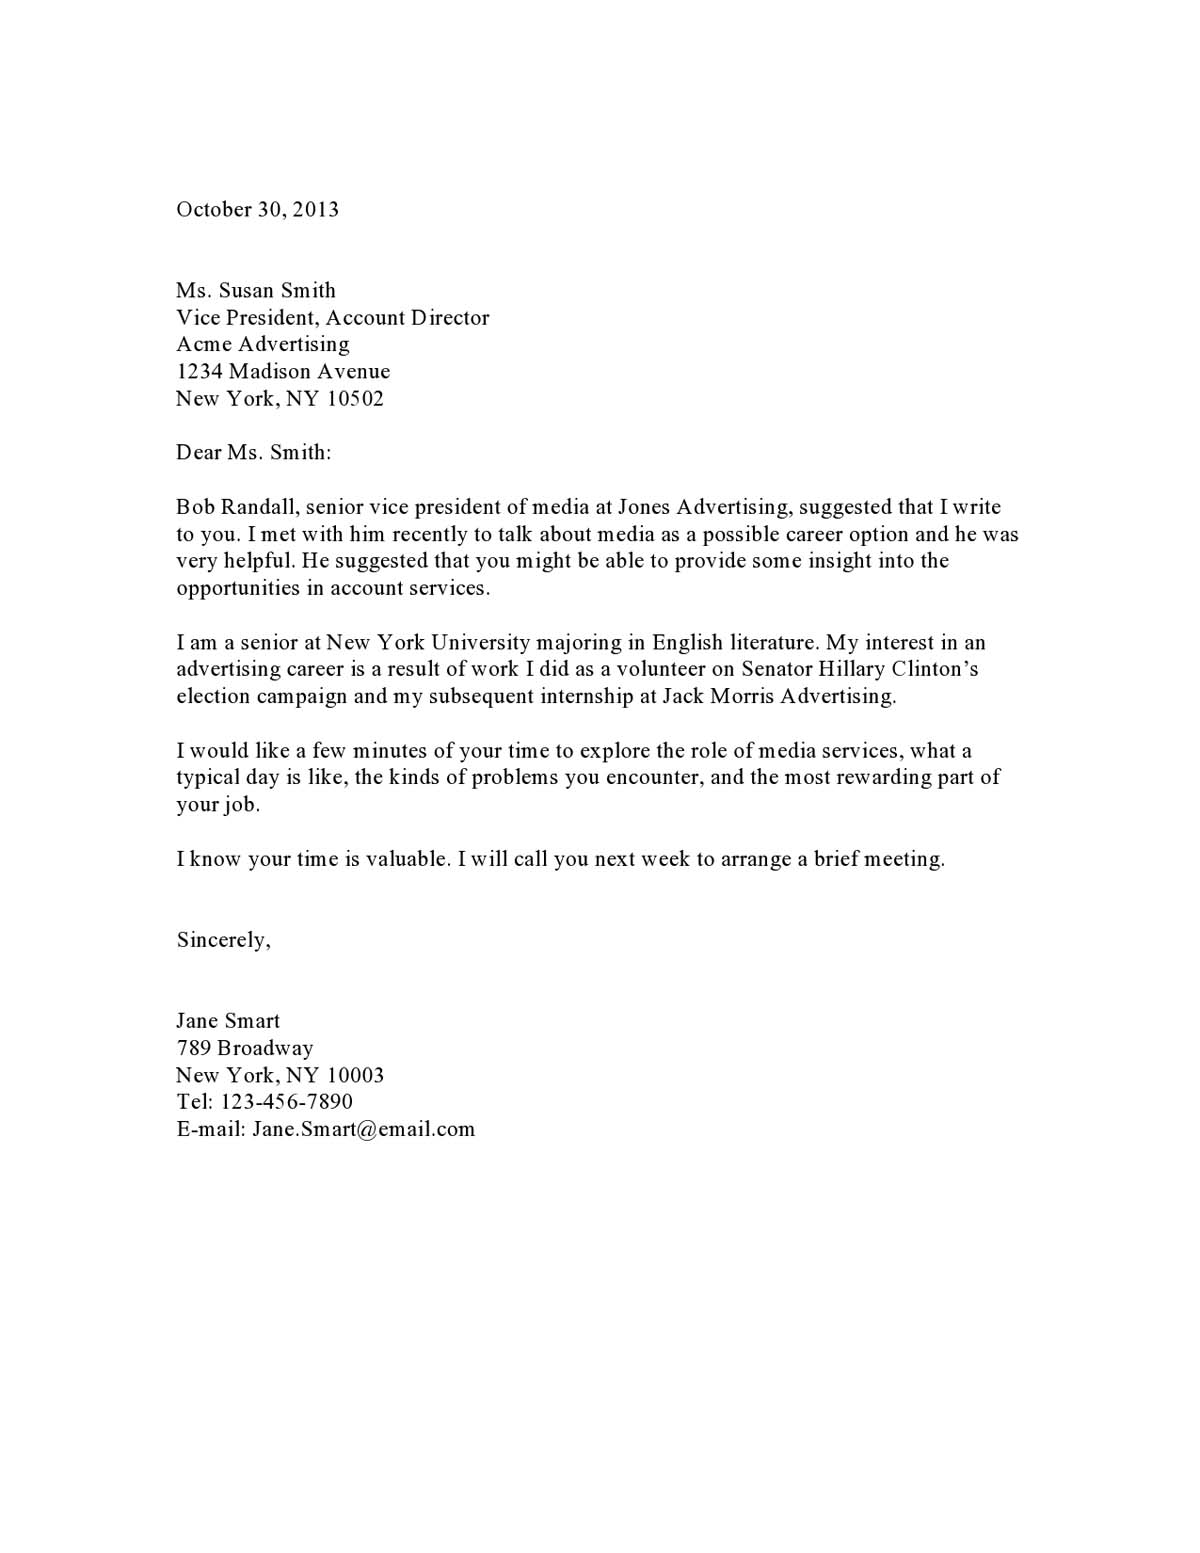 Sample cover letter for applying a job for Cover letter smaples